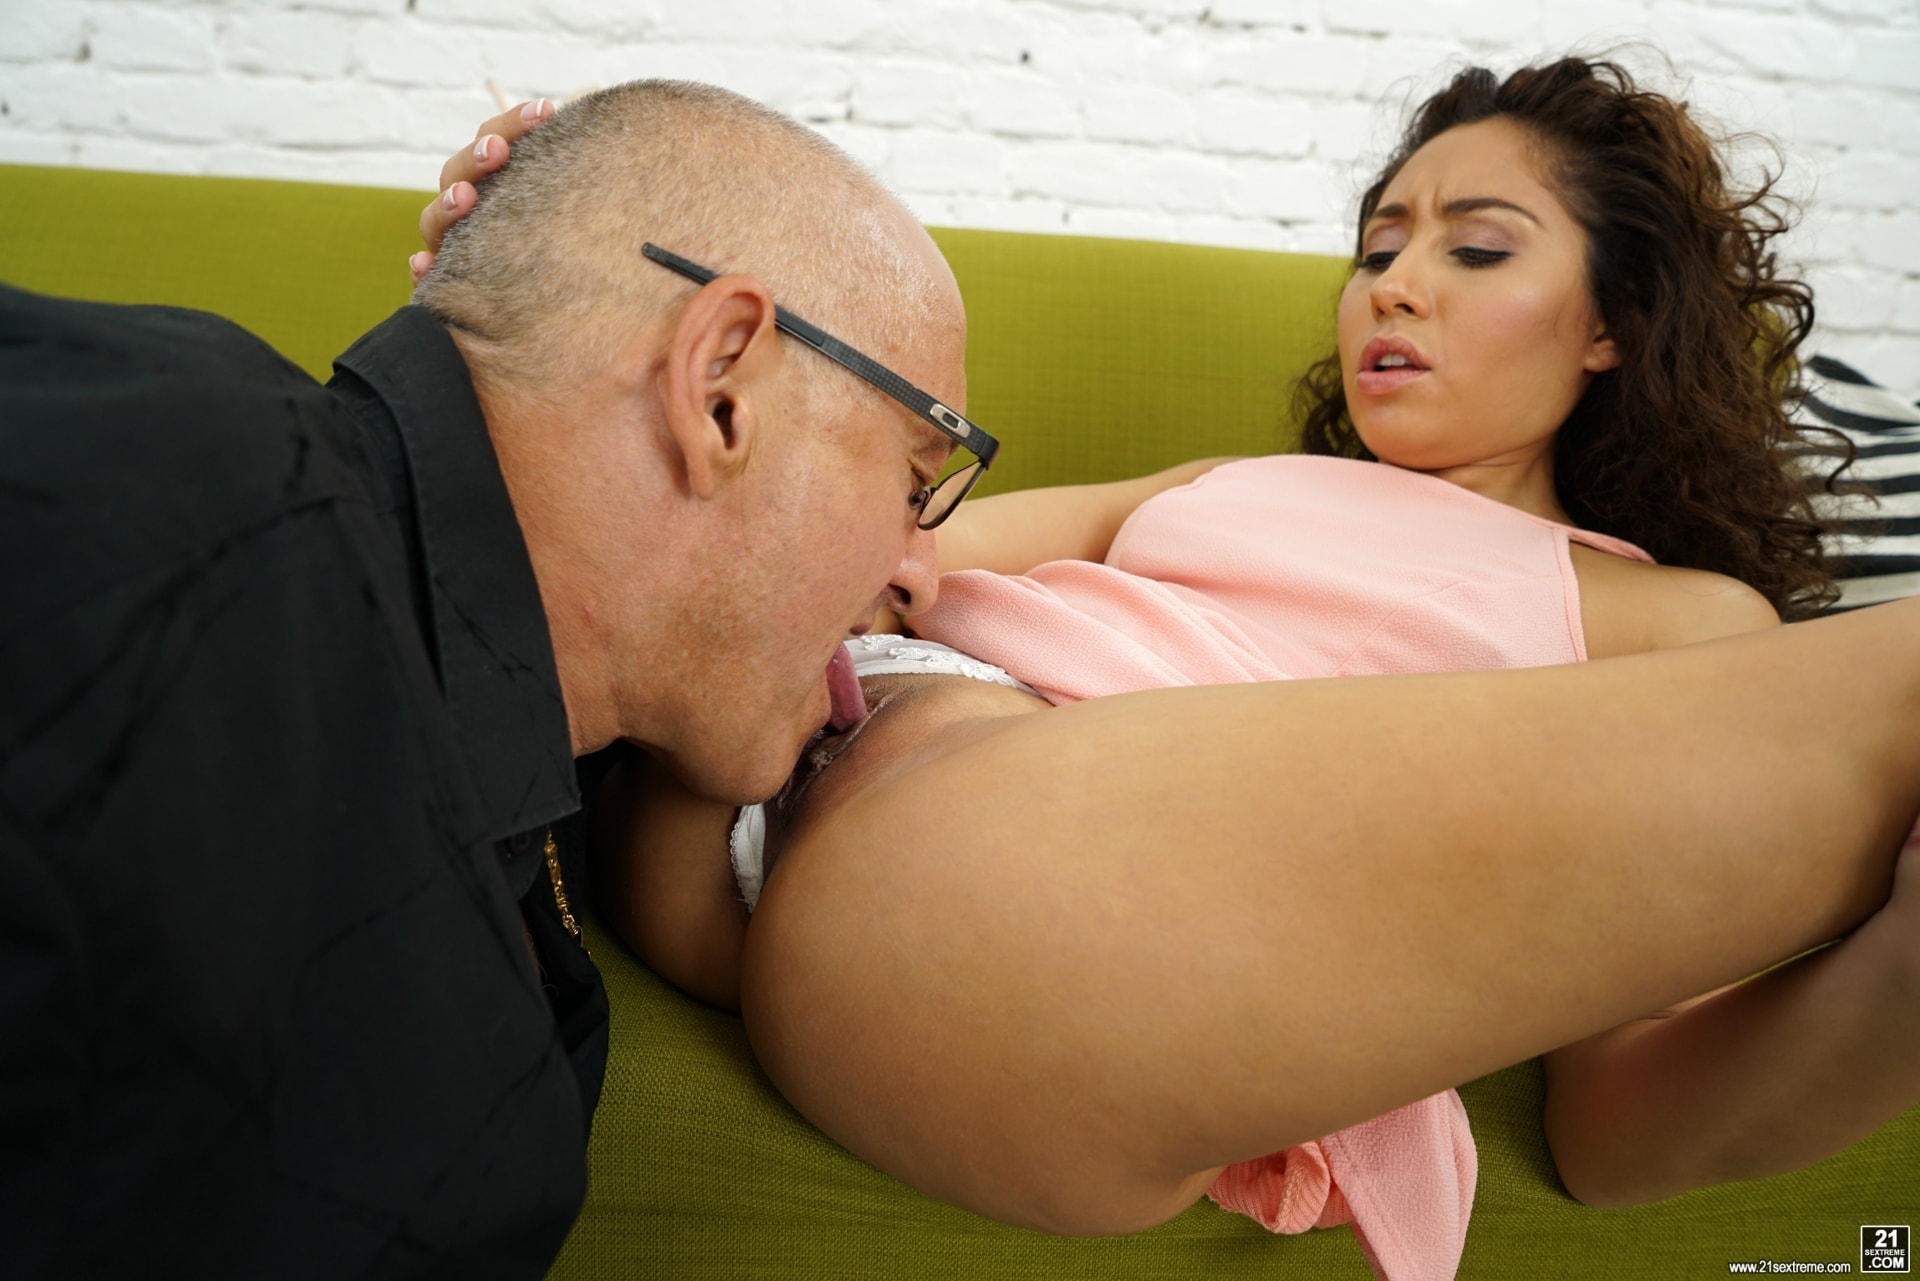 21Sextury 'Petite Melody and Big Bruno' starring Melody Petite (Photo 72)